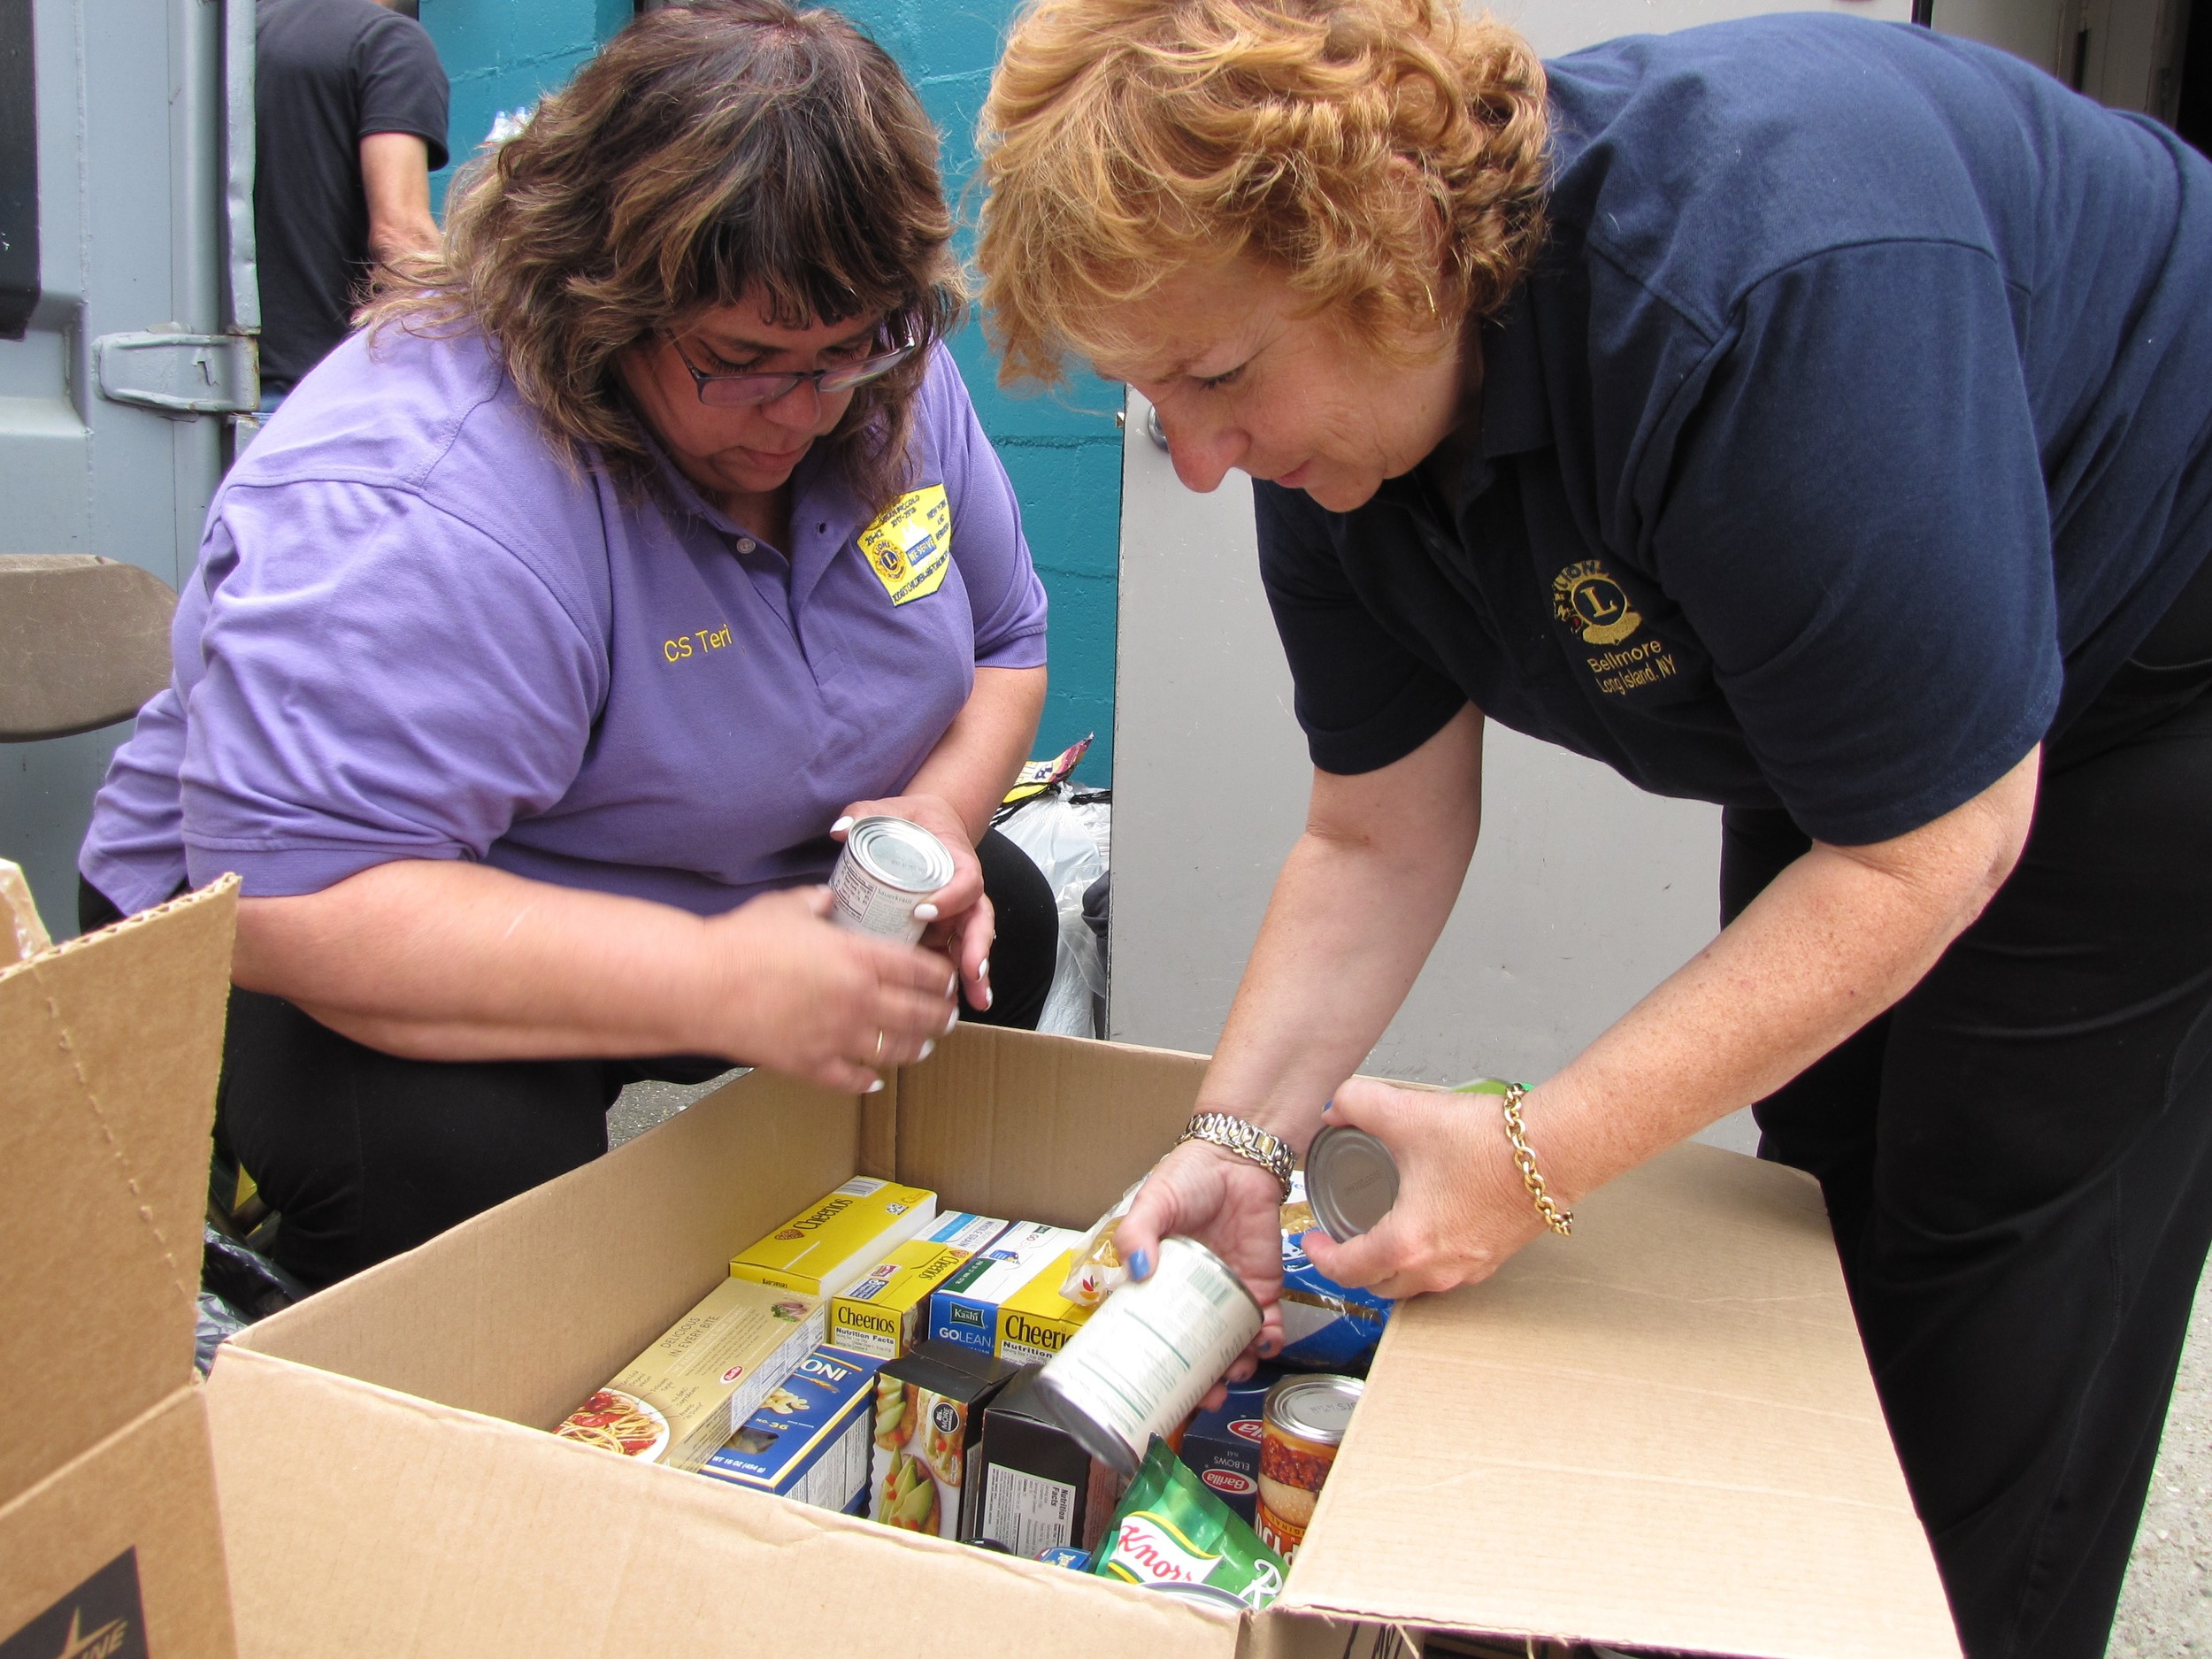 Long Island Lions Teresa Omarie of West Hempstead and Camille Raya of Bellmore sorted through the non-perishable food donations during the Lions Clubs of Long Island Hurricane Harvey emergency relief supply drive on Sept. 2 in Massapequa.